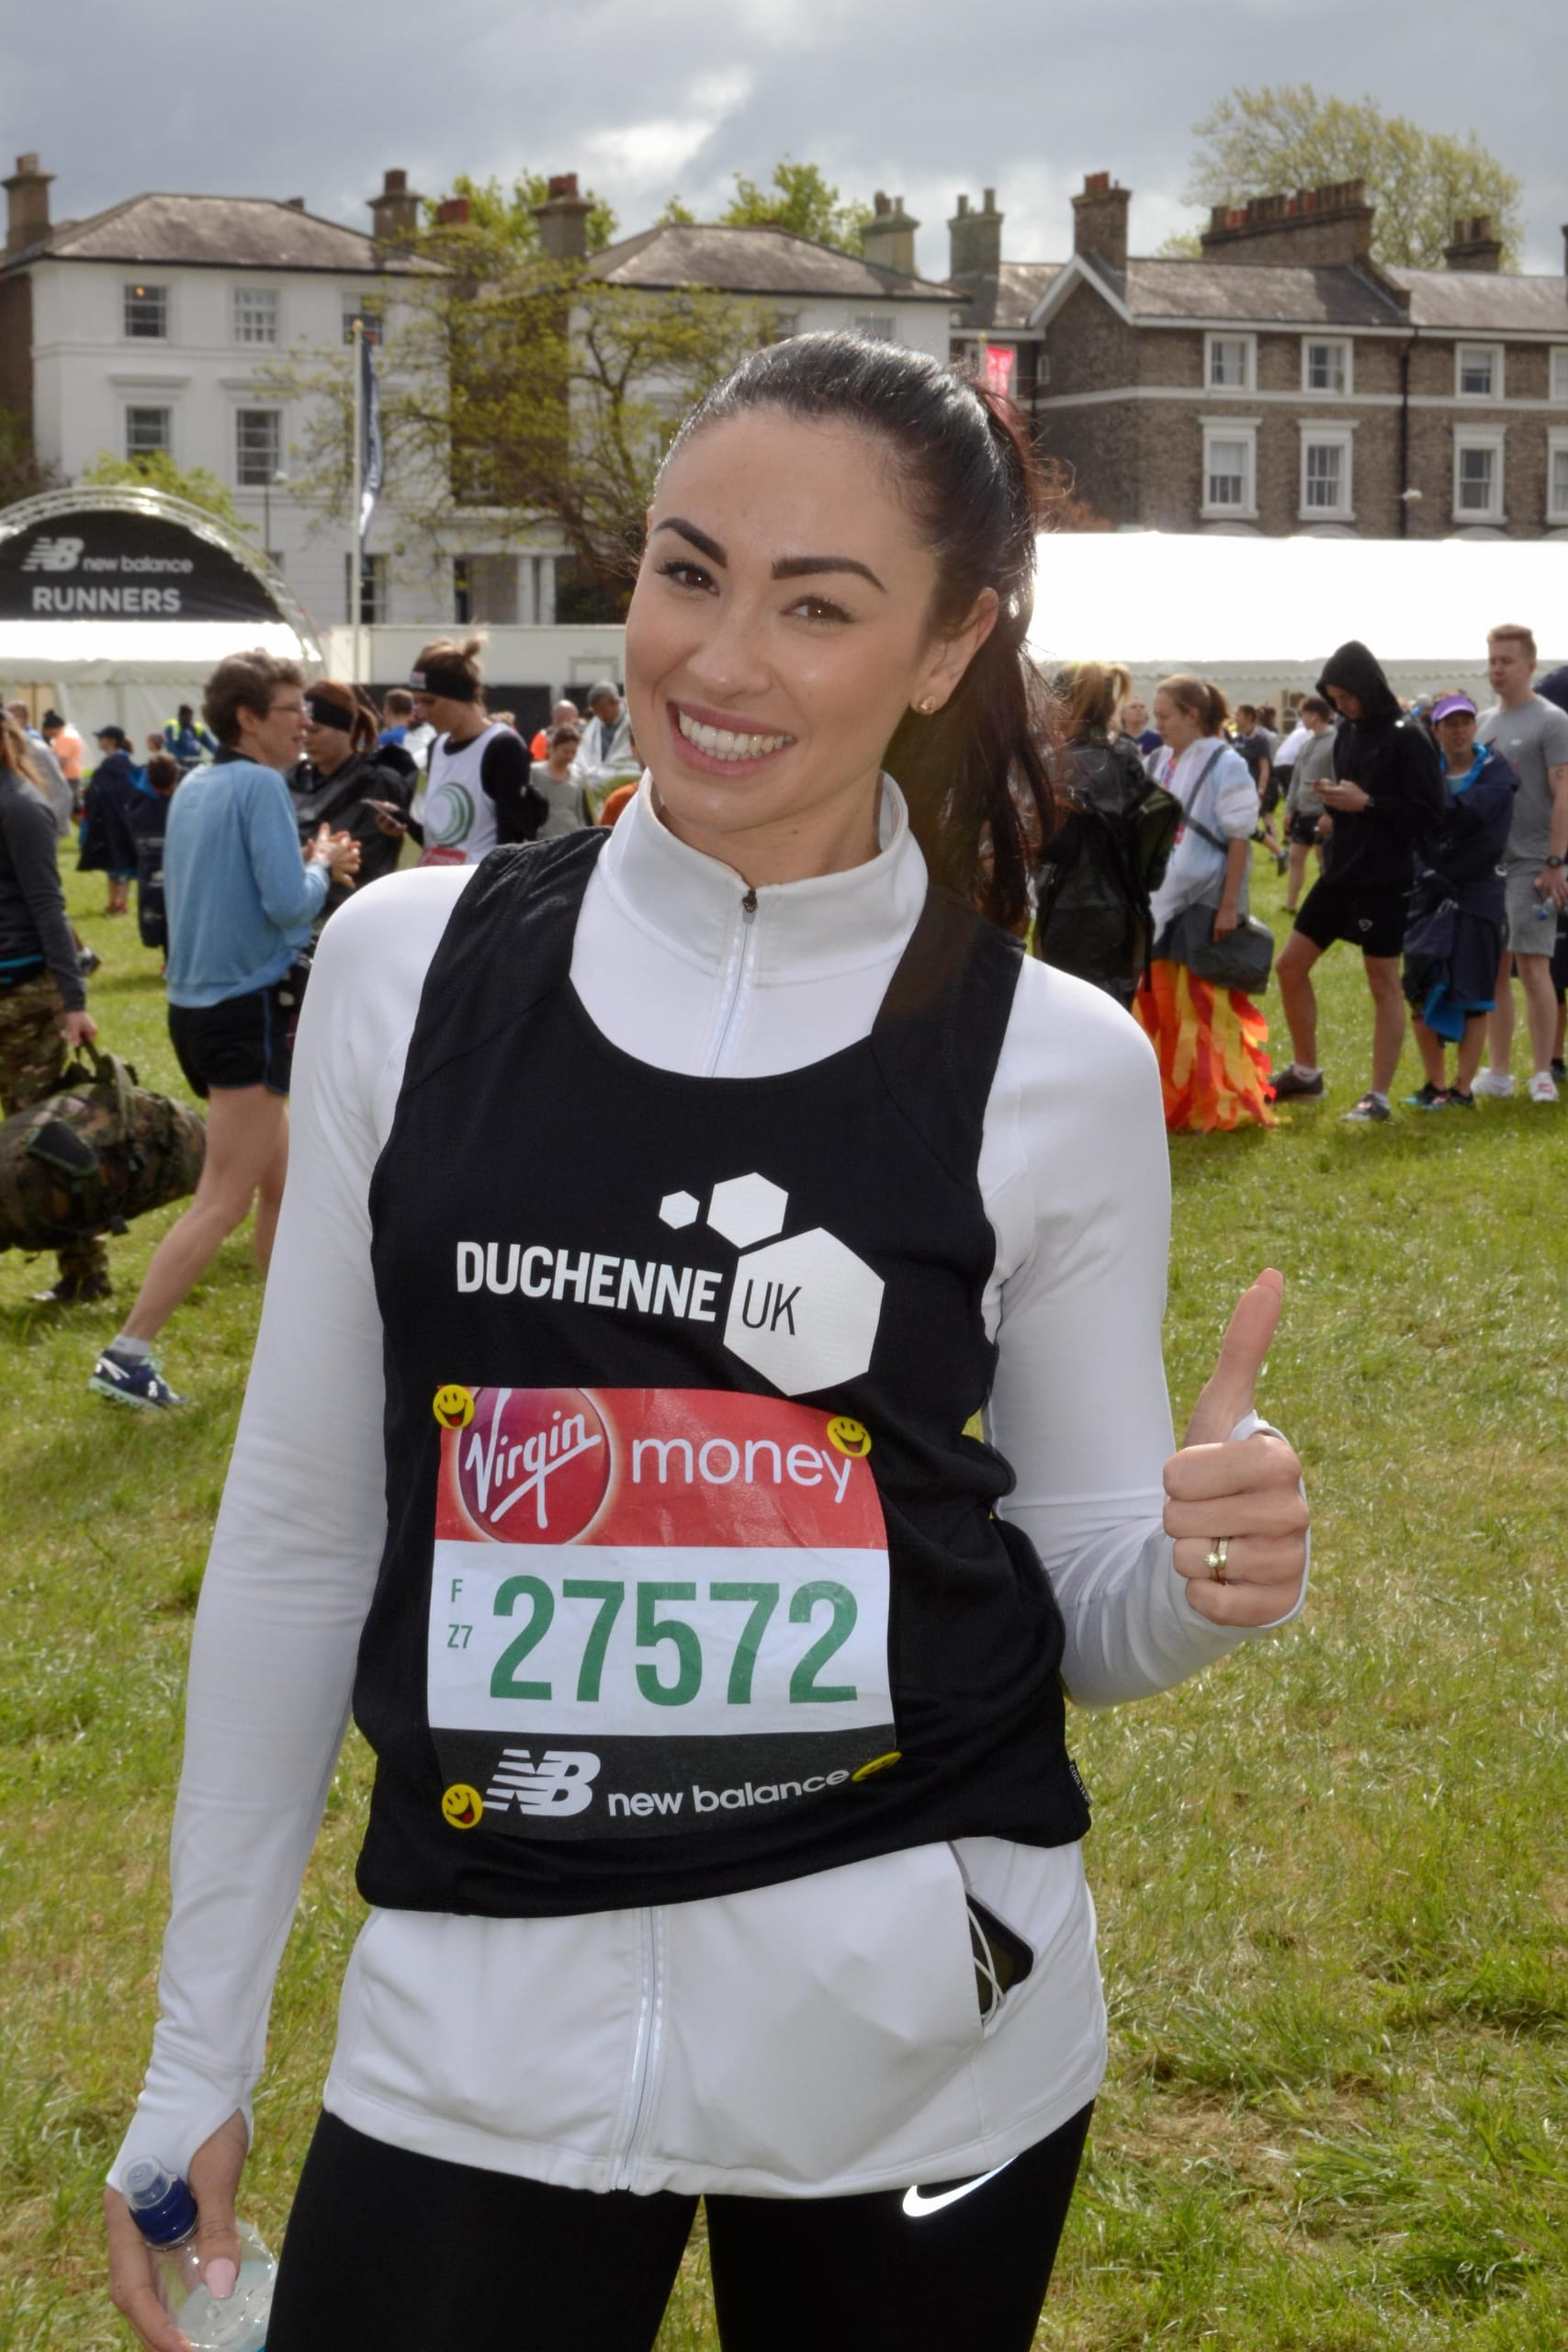 Hannah posing with a thumbs up before London Marathon